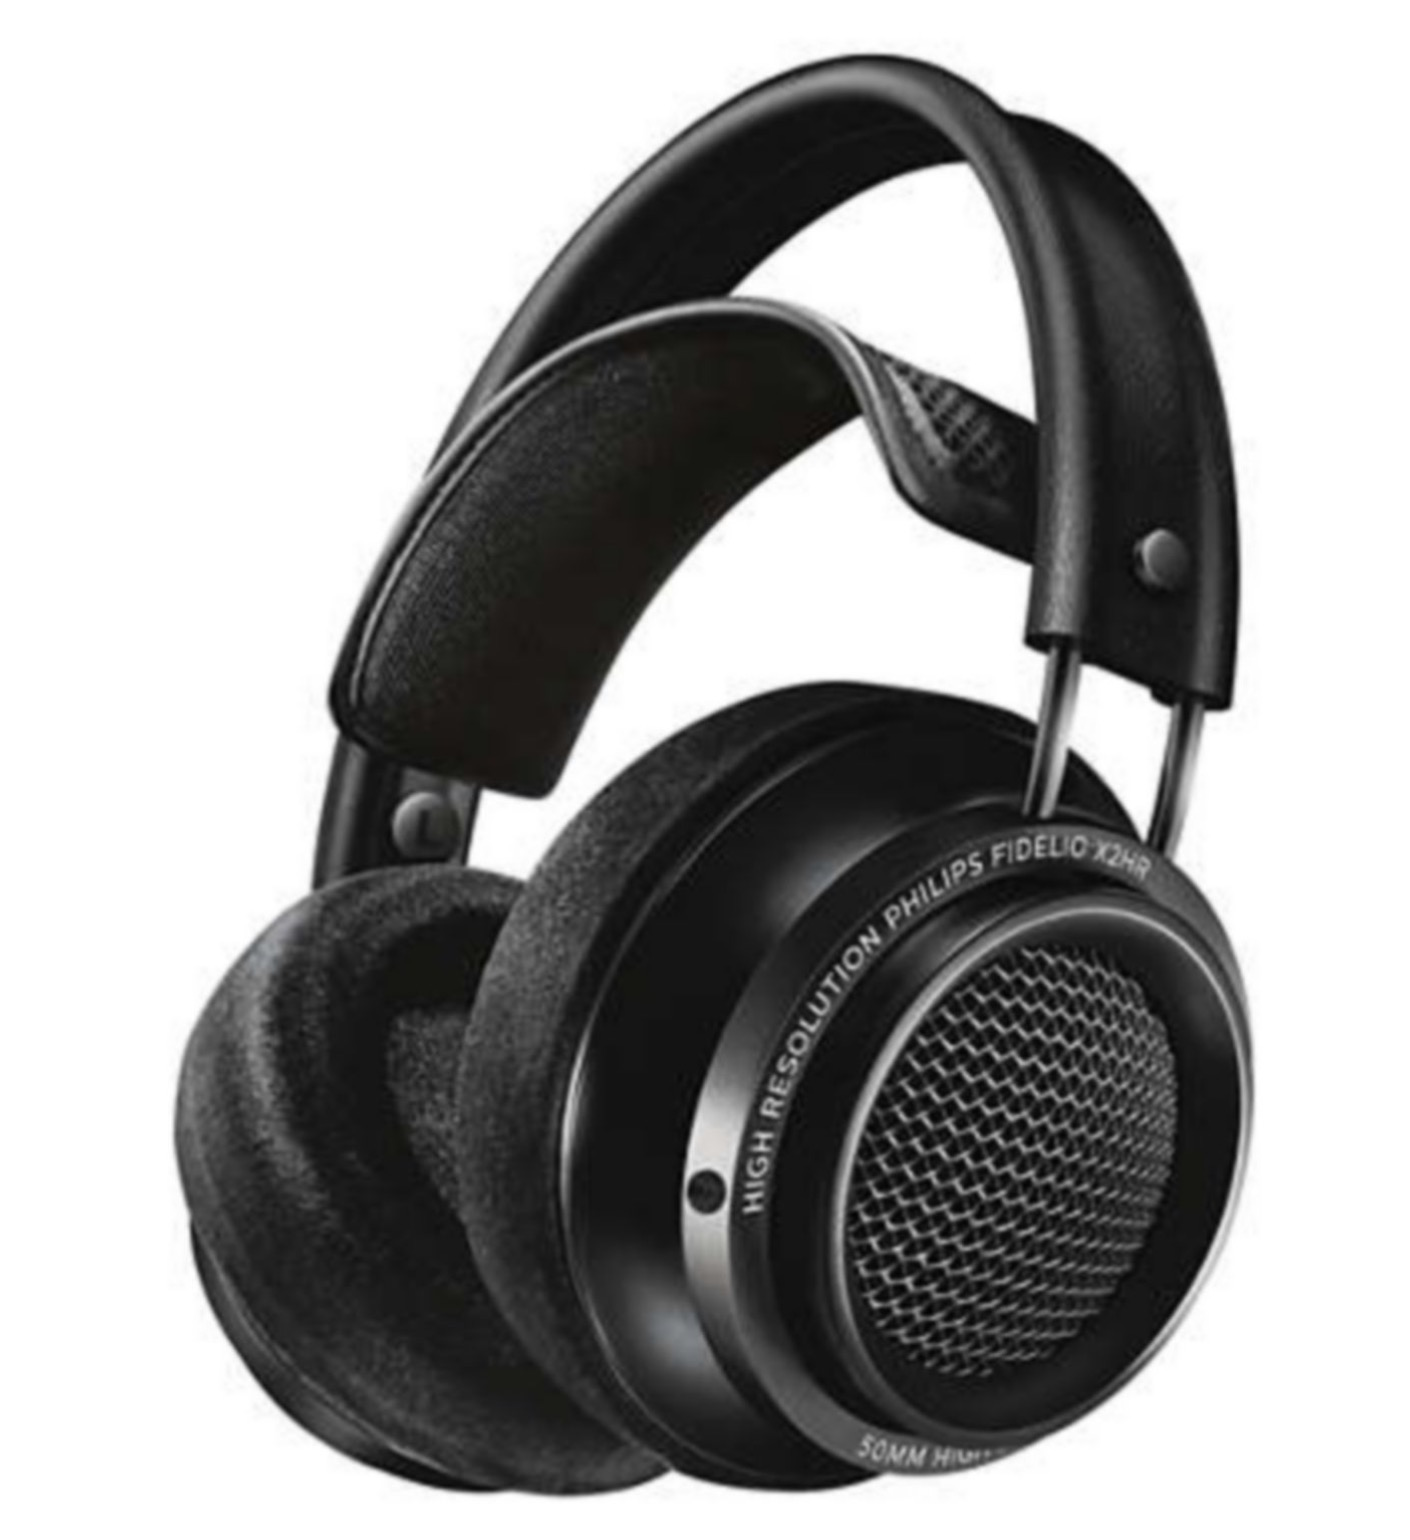 Philips Fidelio X2HR/00 High Resolution Over-Ear Kopfhörer für nur 199,99 Euro